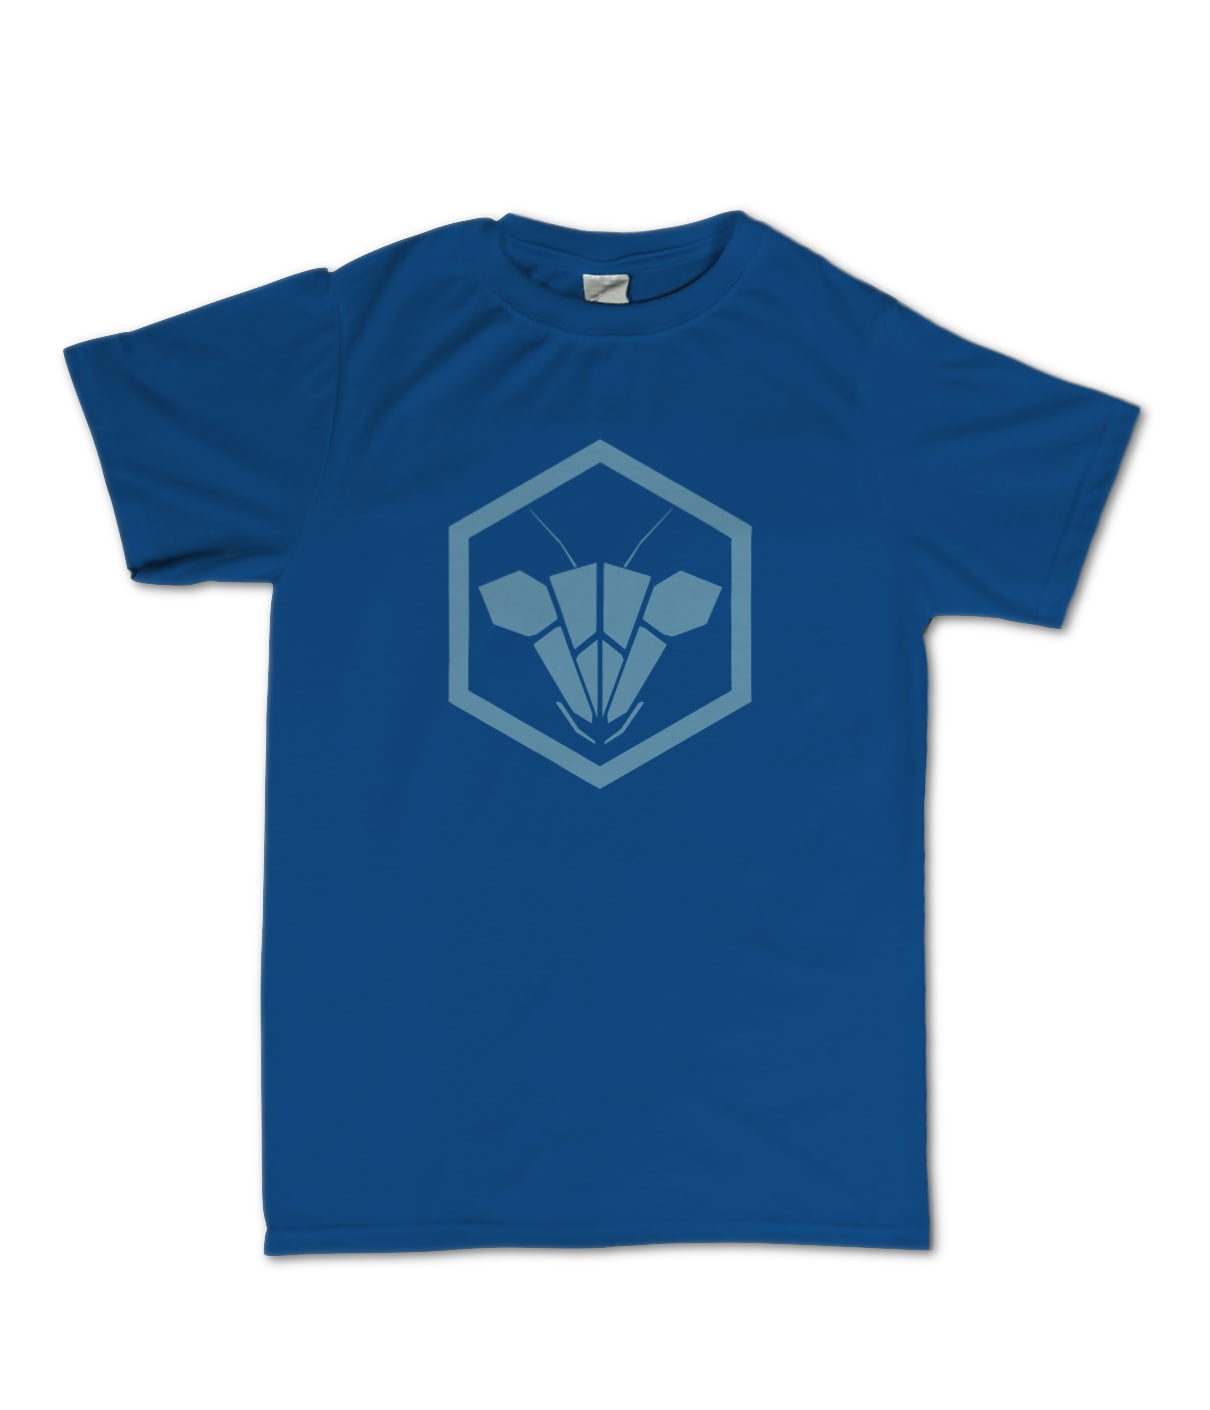 Woodpecking mantis woodpecking mantis logo blue  1482121440